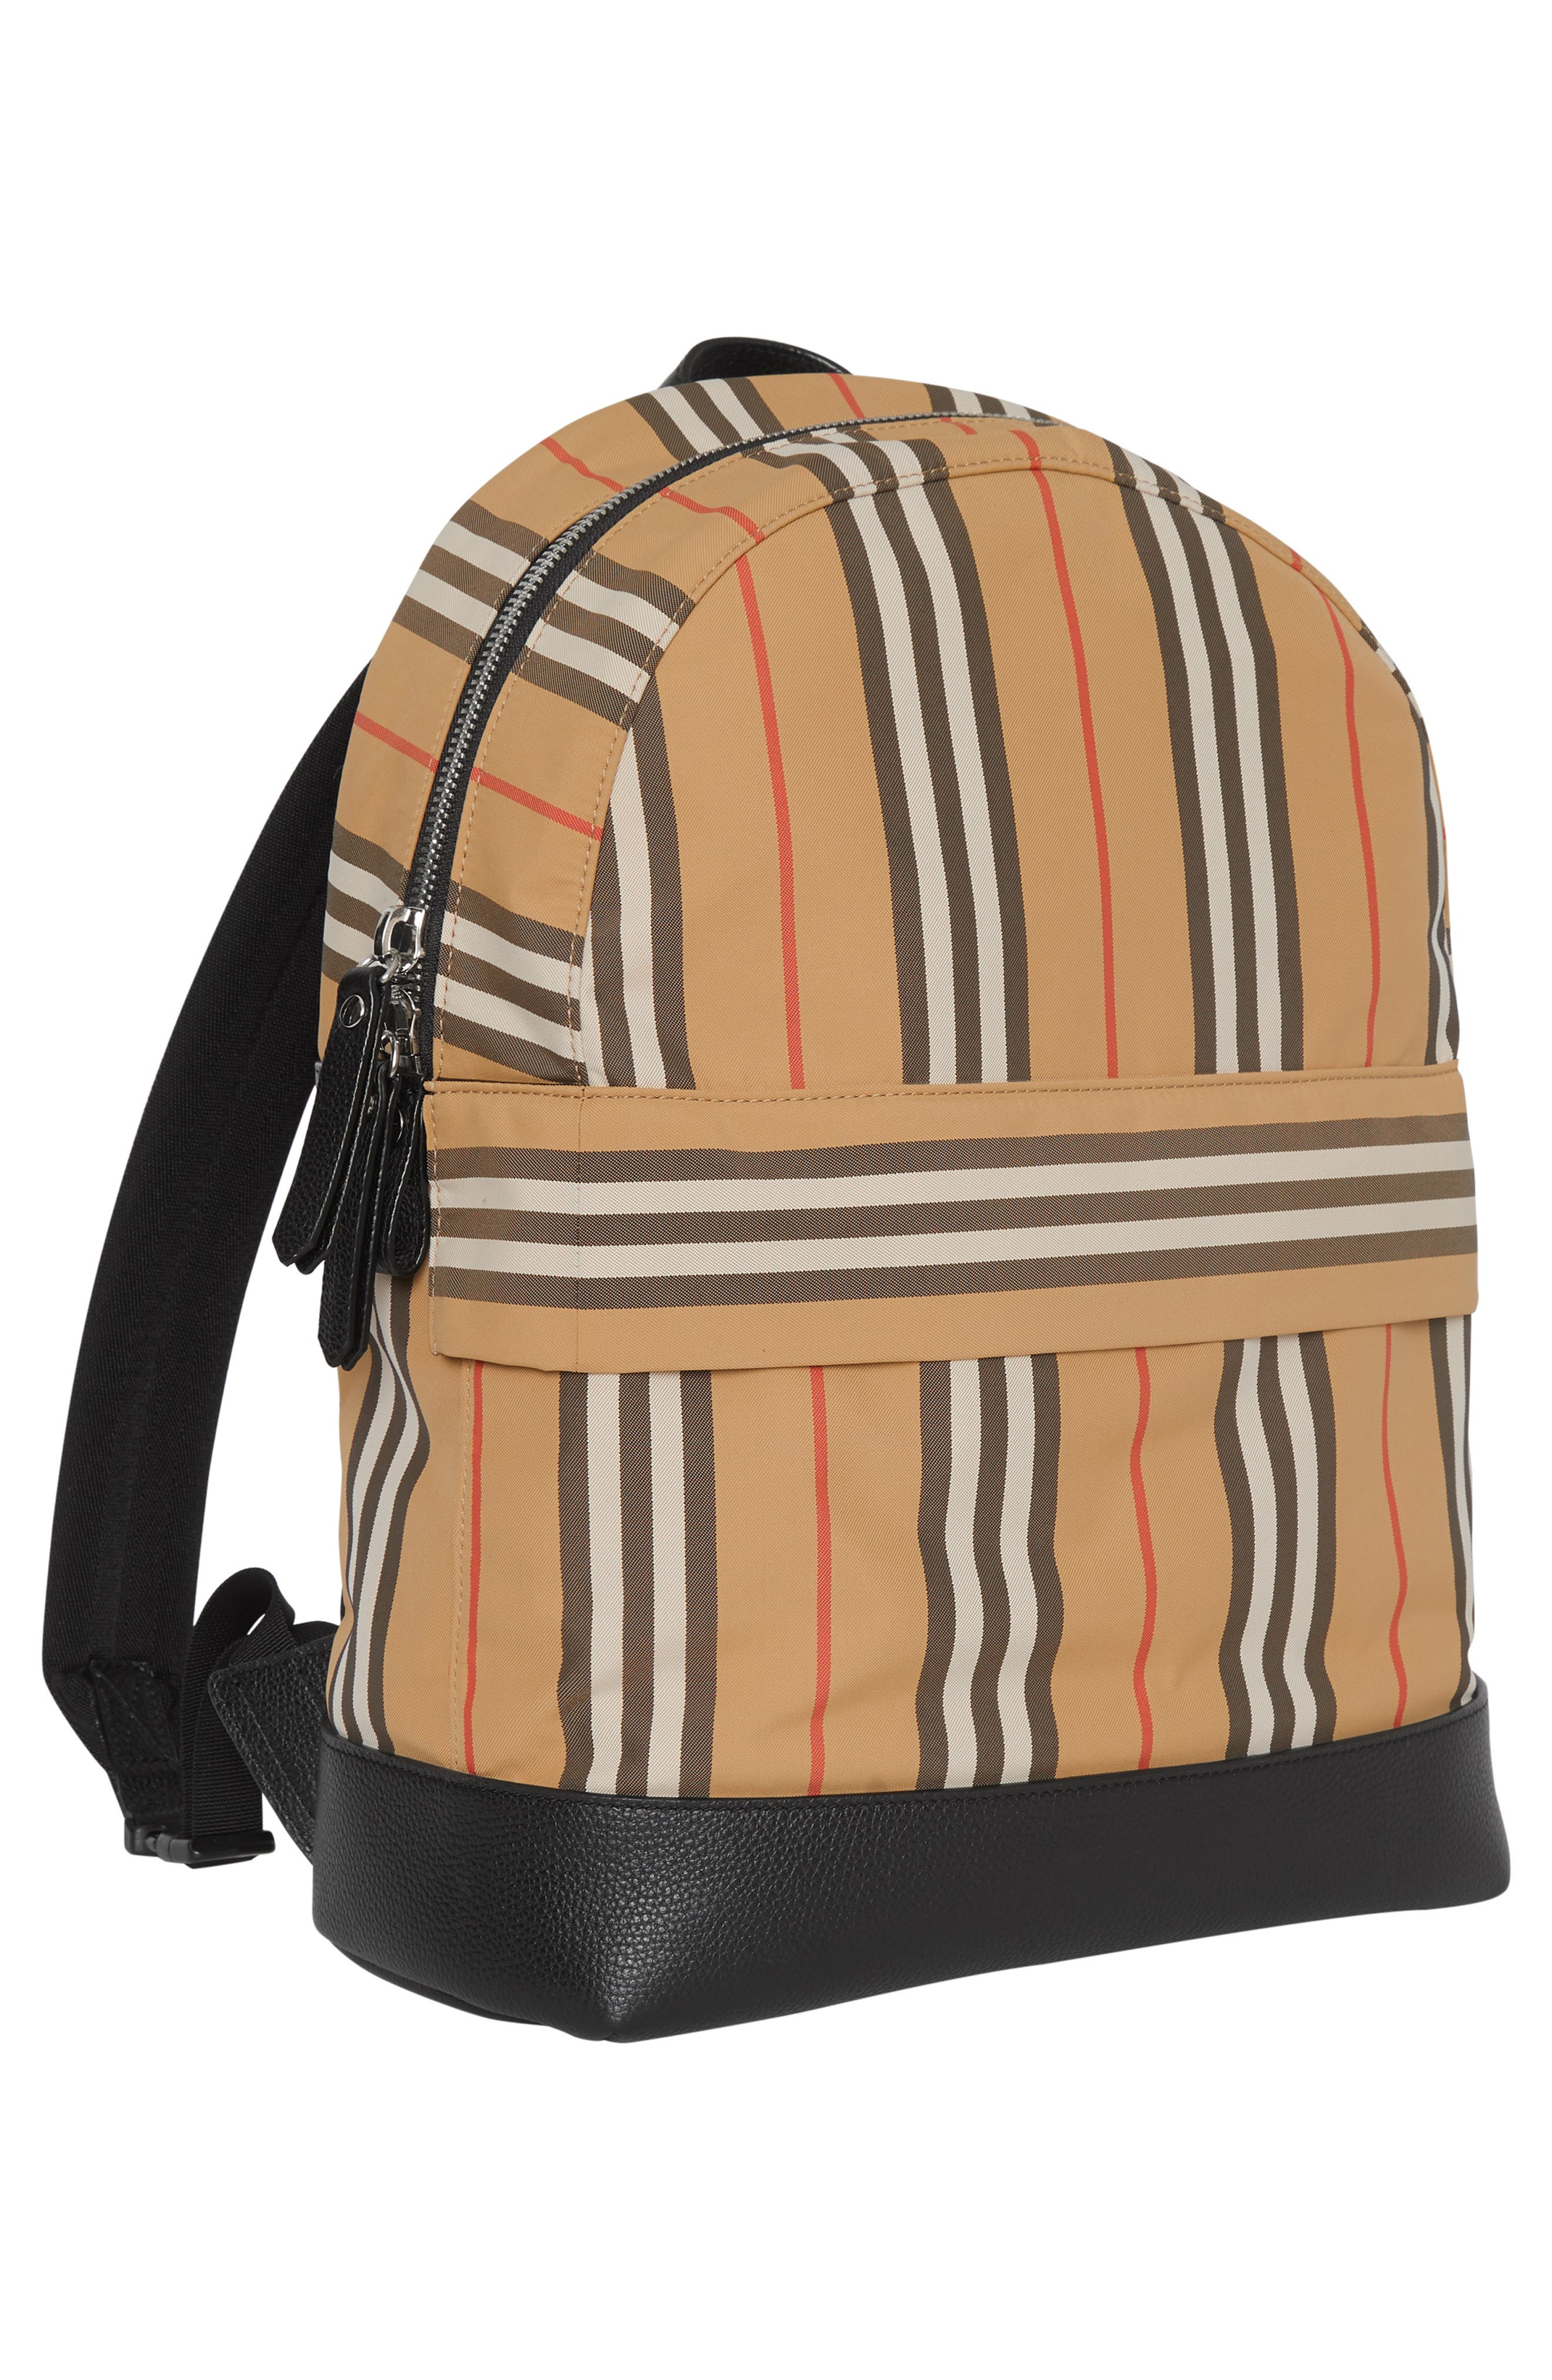 BURBERRY, Nico Archive Stripe Backpack, Alternate thumbnail 4, color, ARCHIVE BEIGE